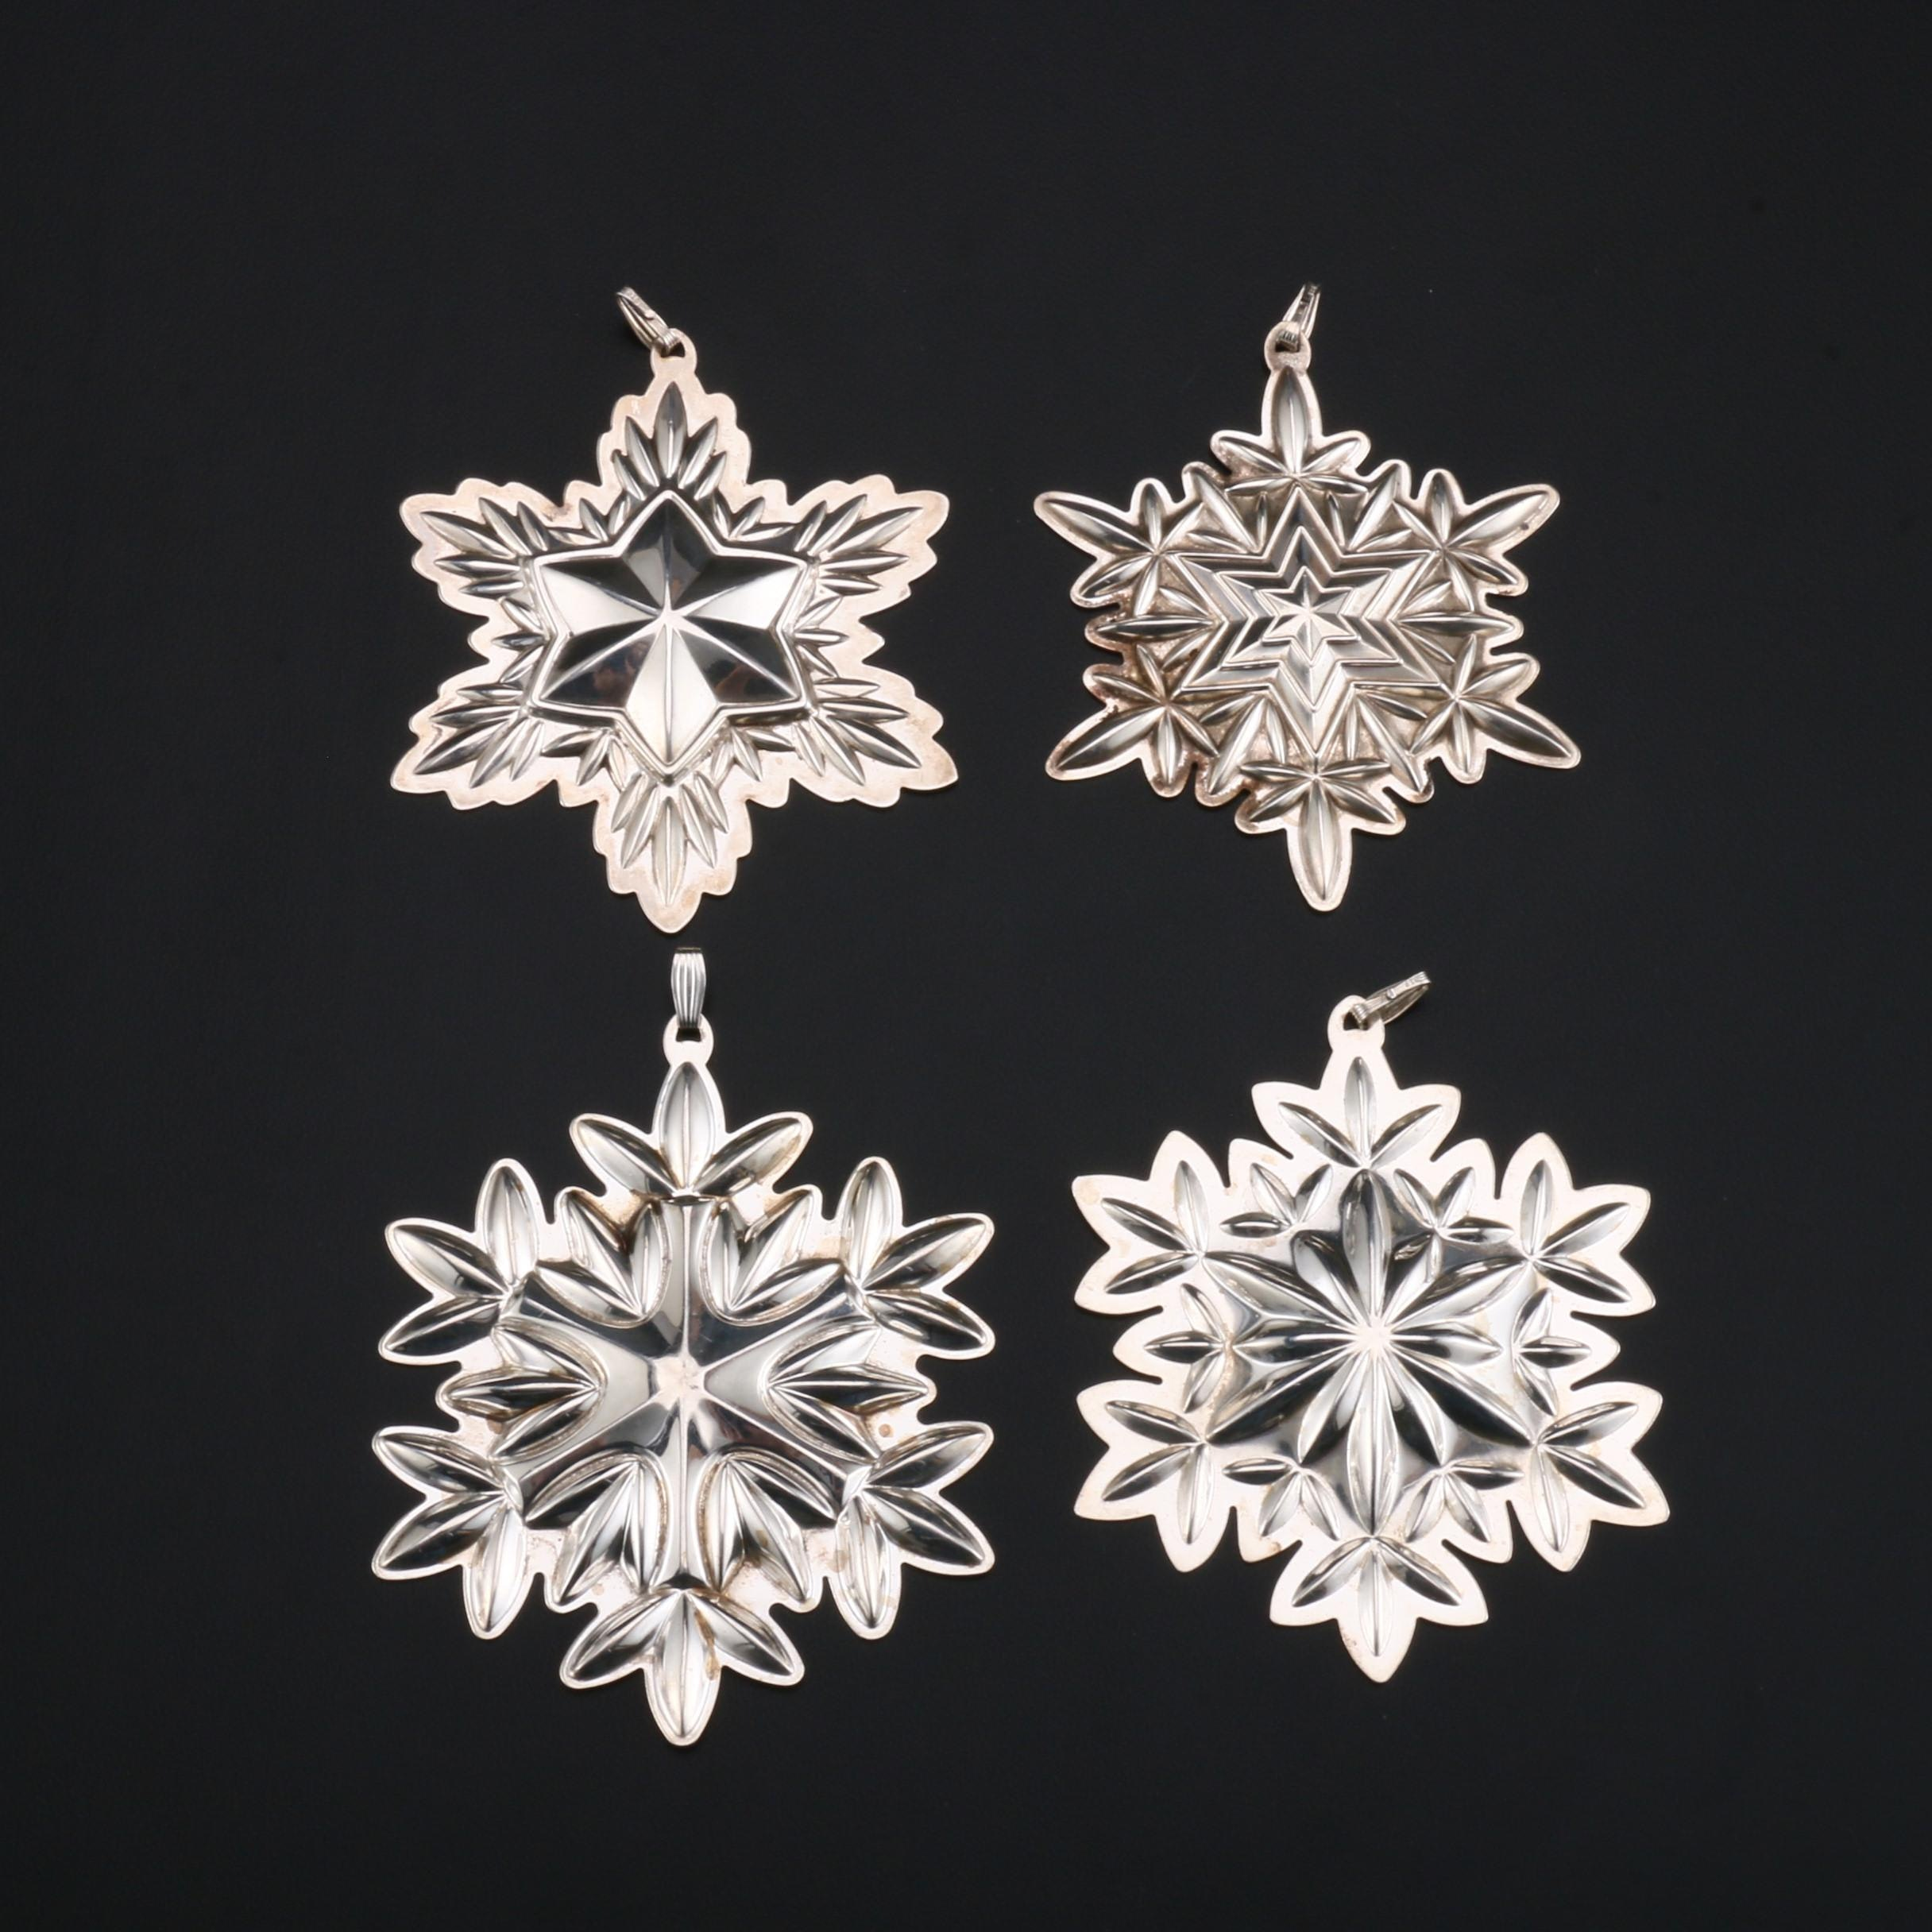 Waterford Sterling Silver Snowflake Ornaments